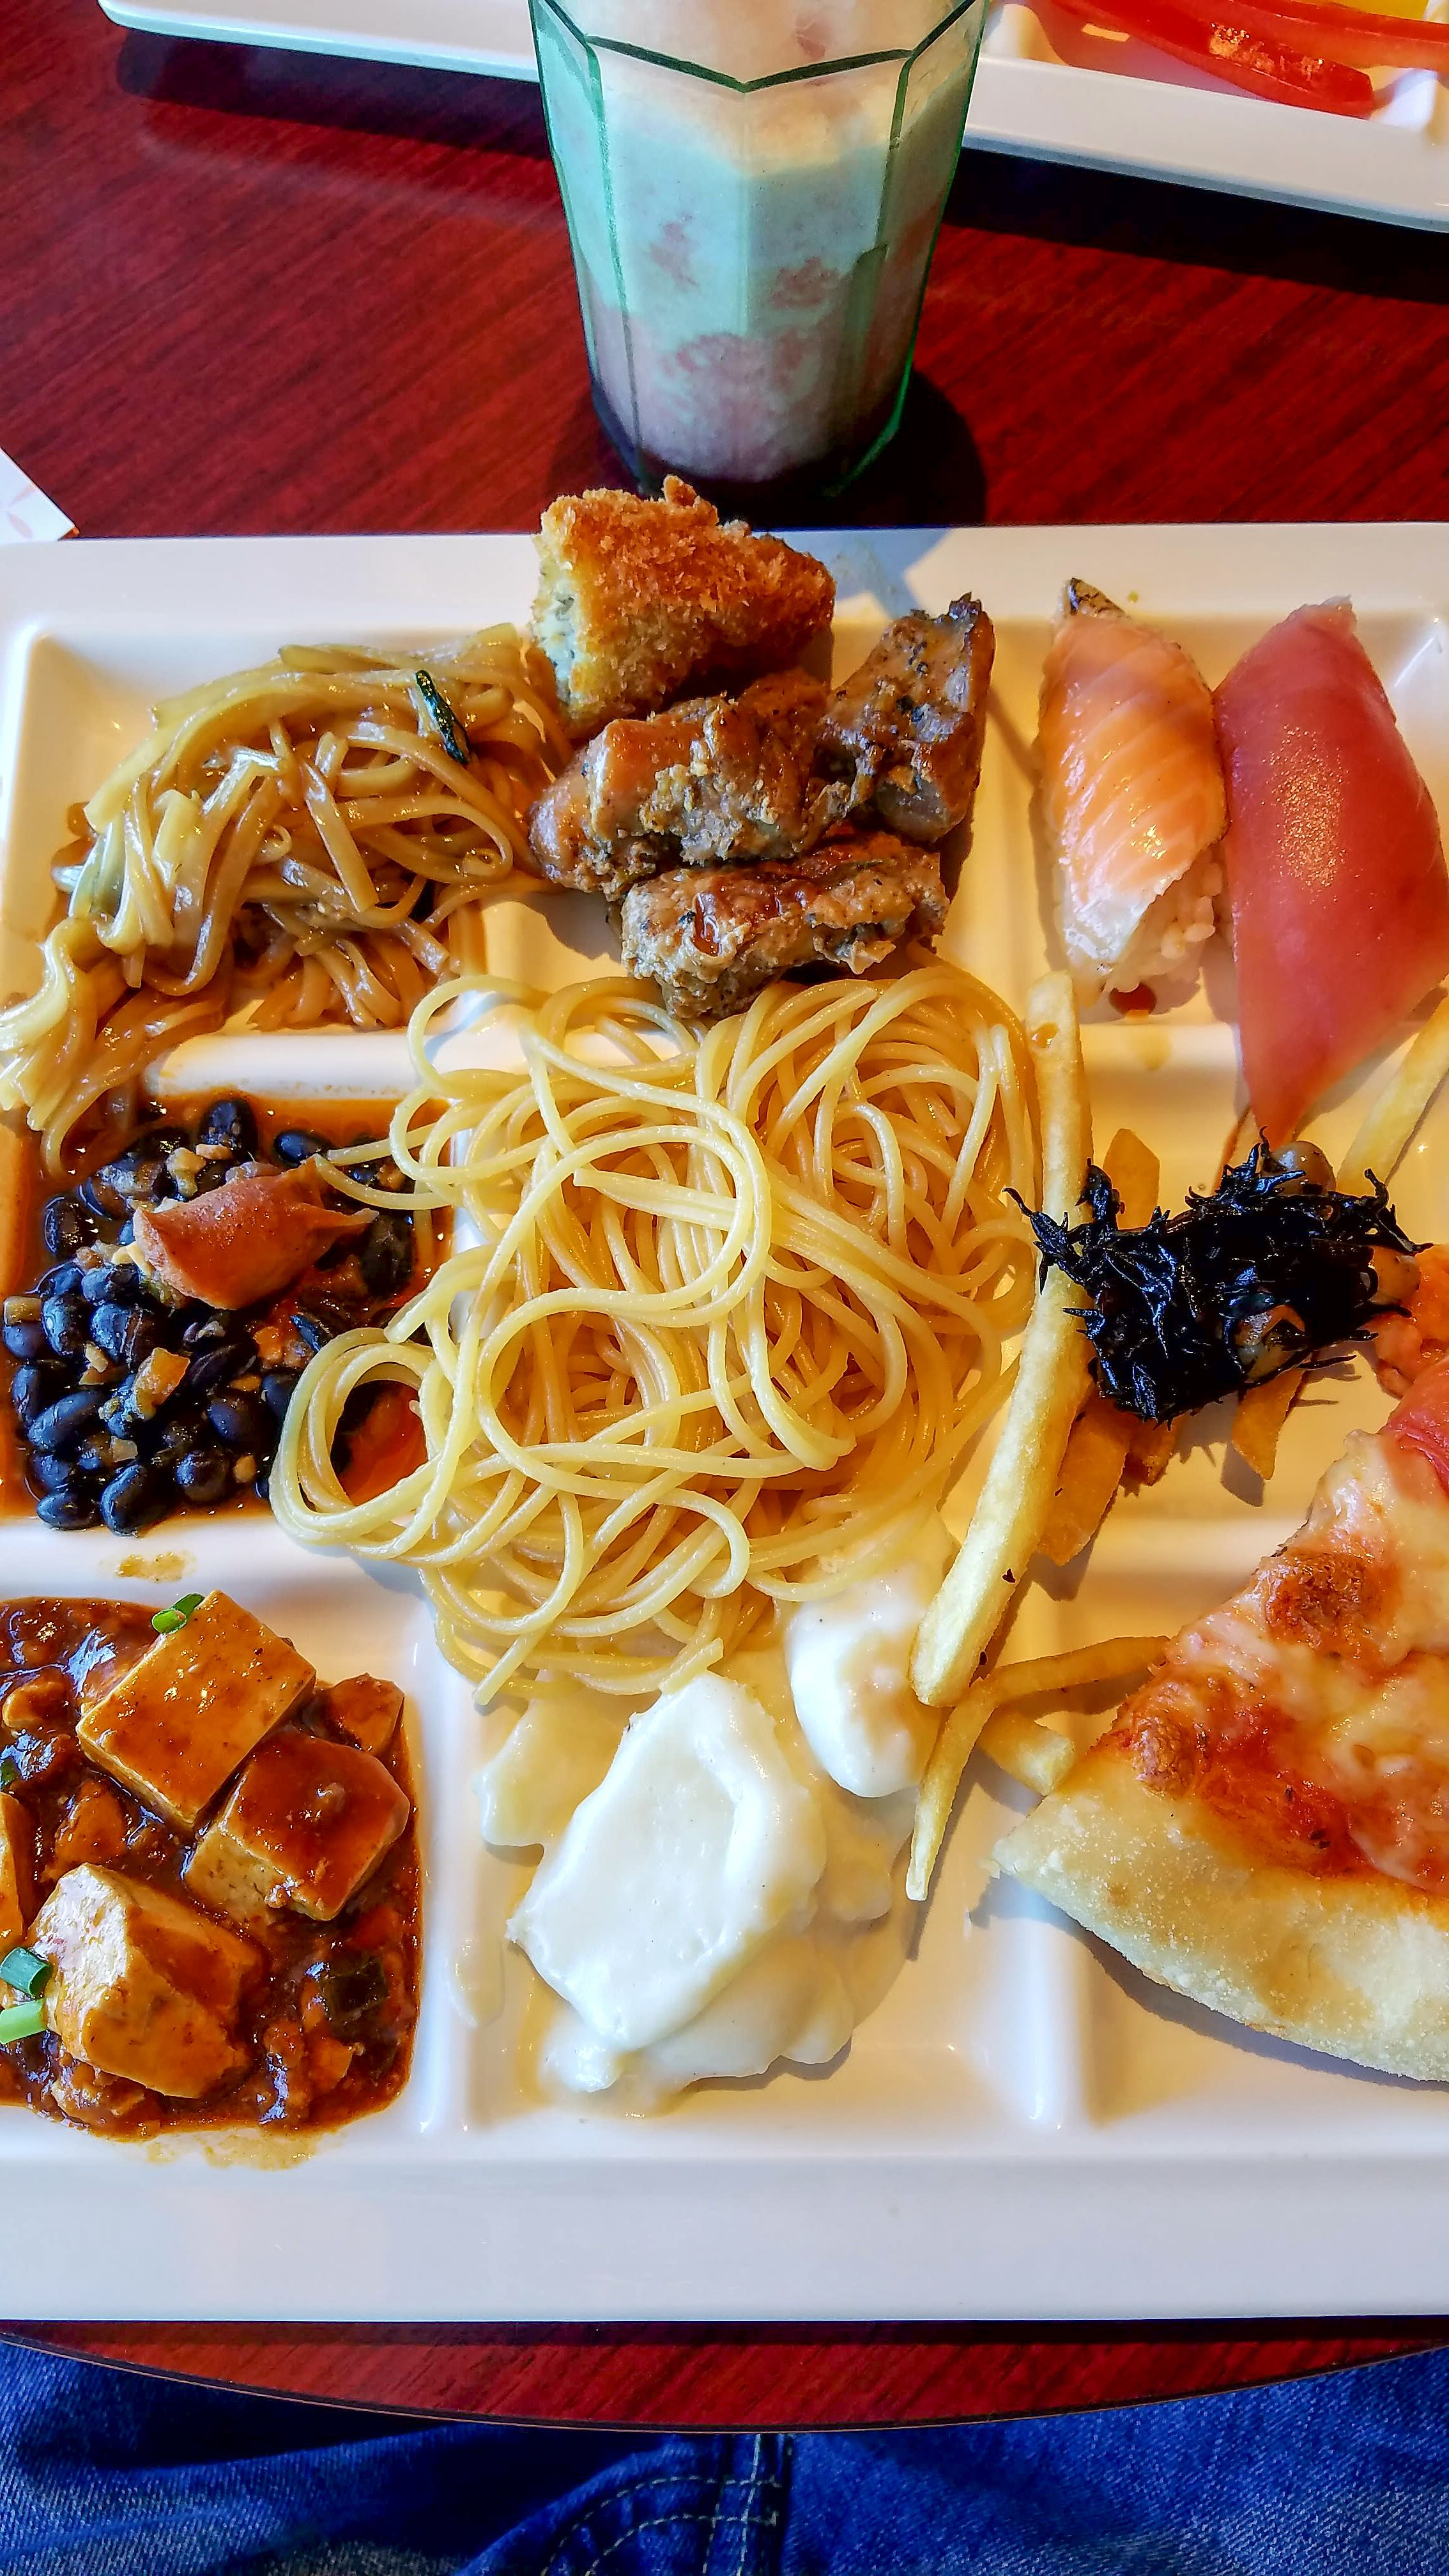 All you can eat buffet in odaiba tokyo japan eat